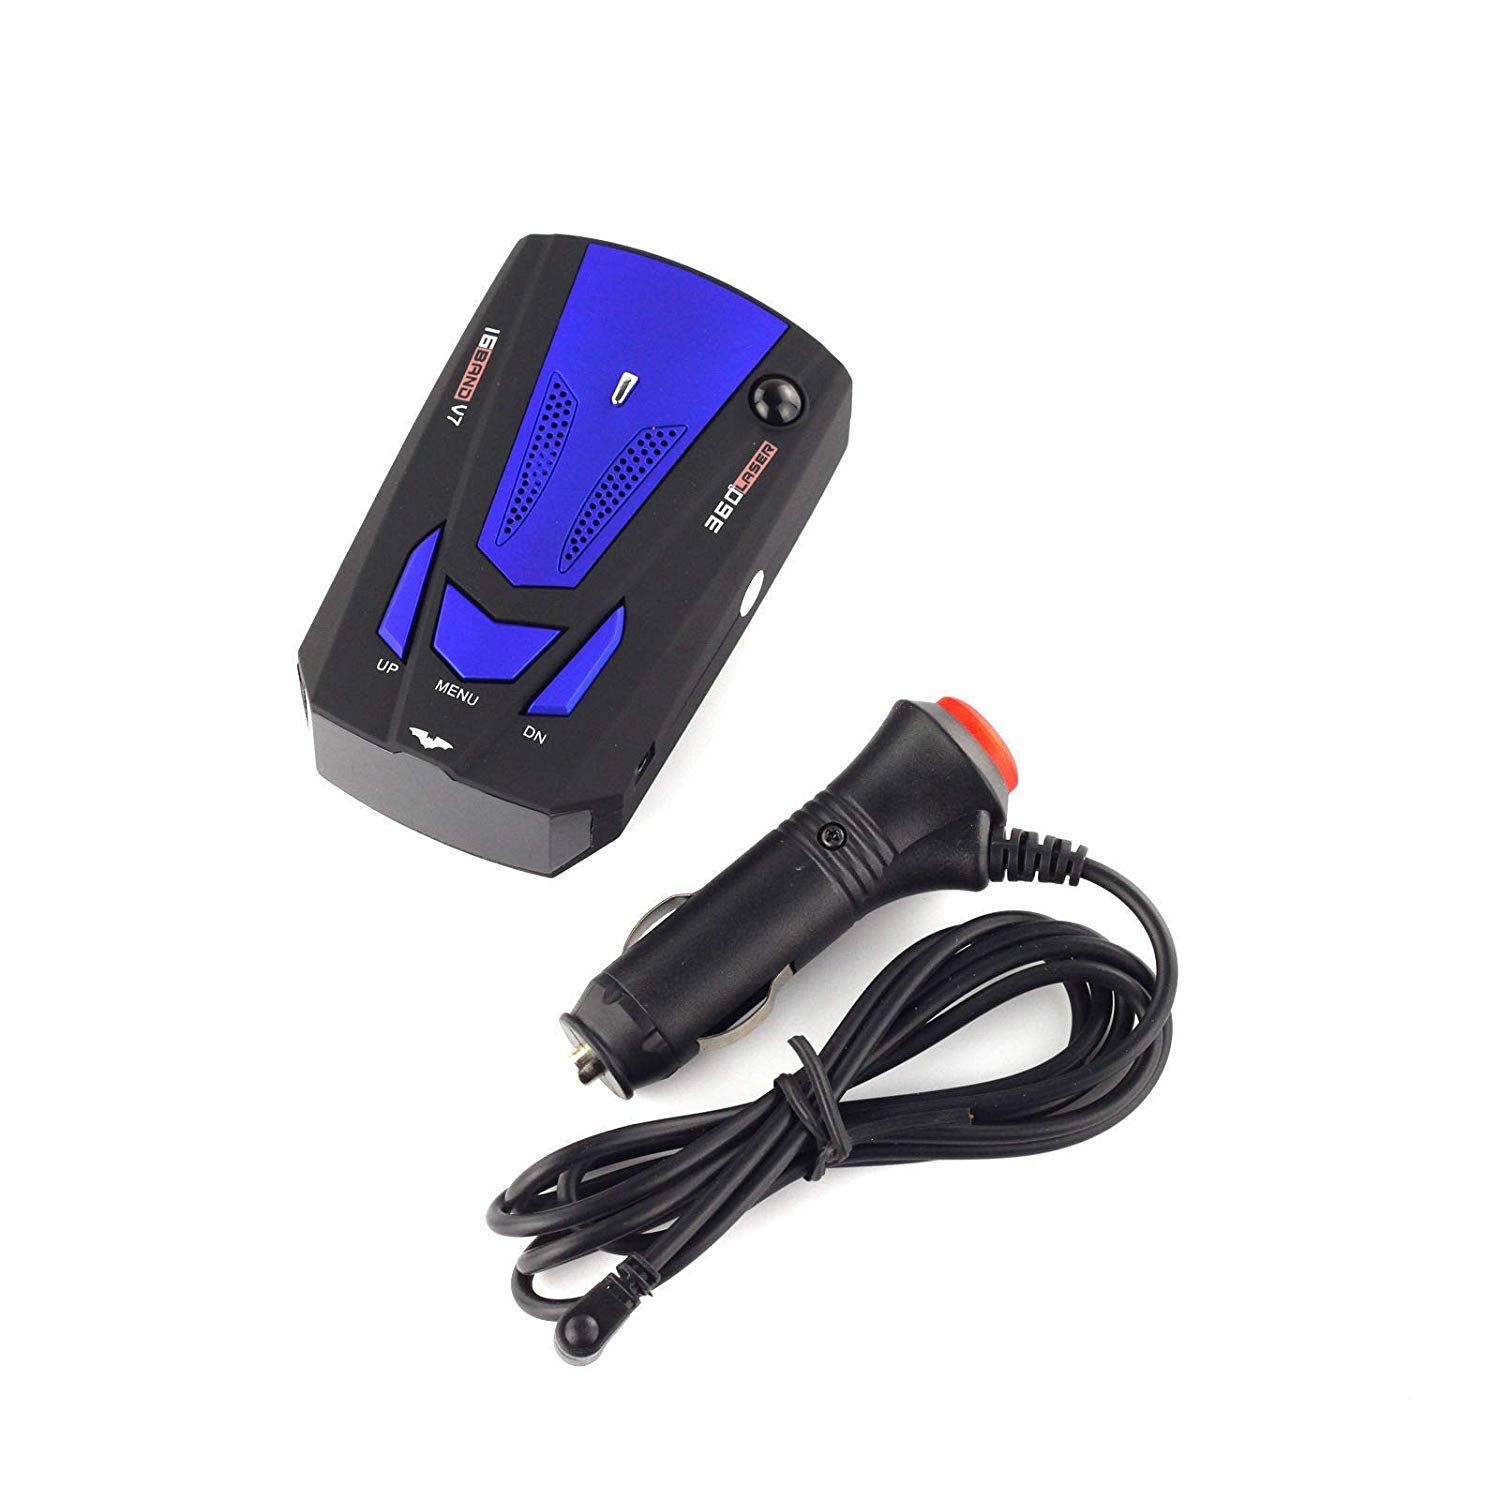 City//Highway Mode 360 Degree Detection Radar Detectors with LED Display for Cars Radar Detector FCC Approved Voice Alert and Car Speed Alarm System